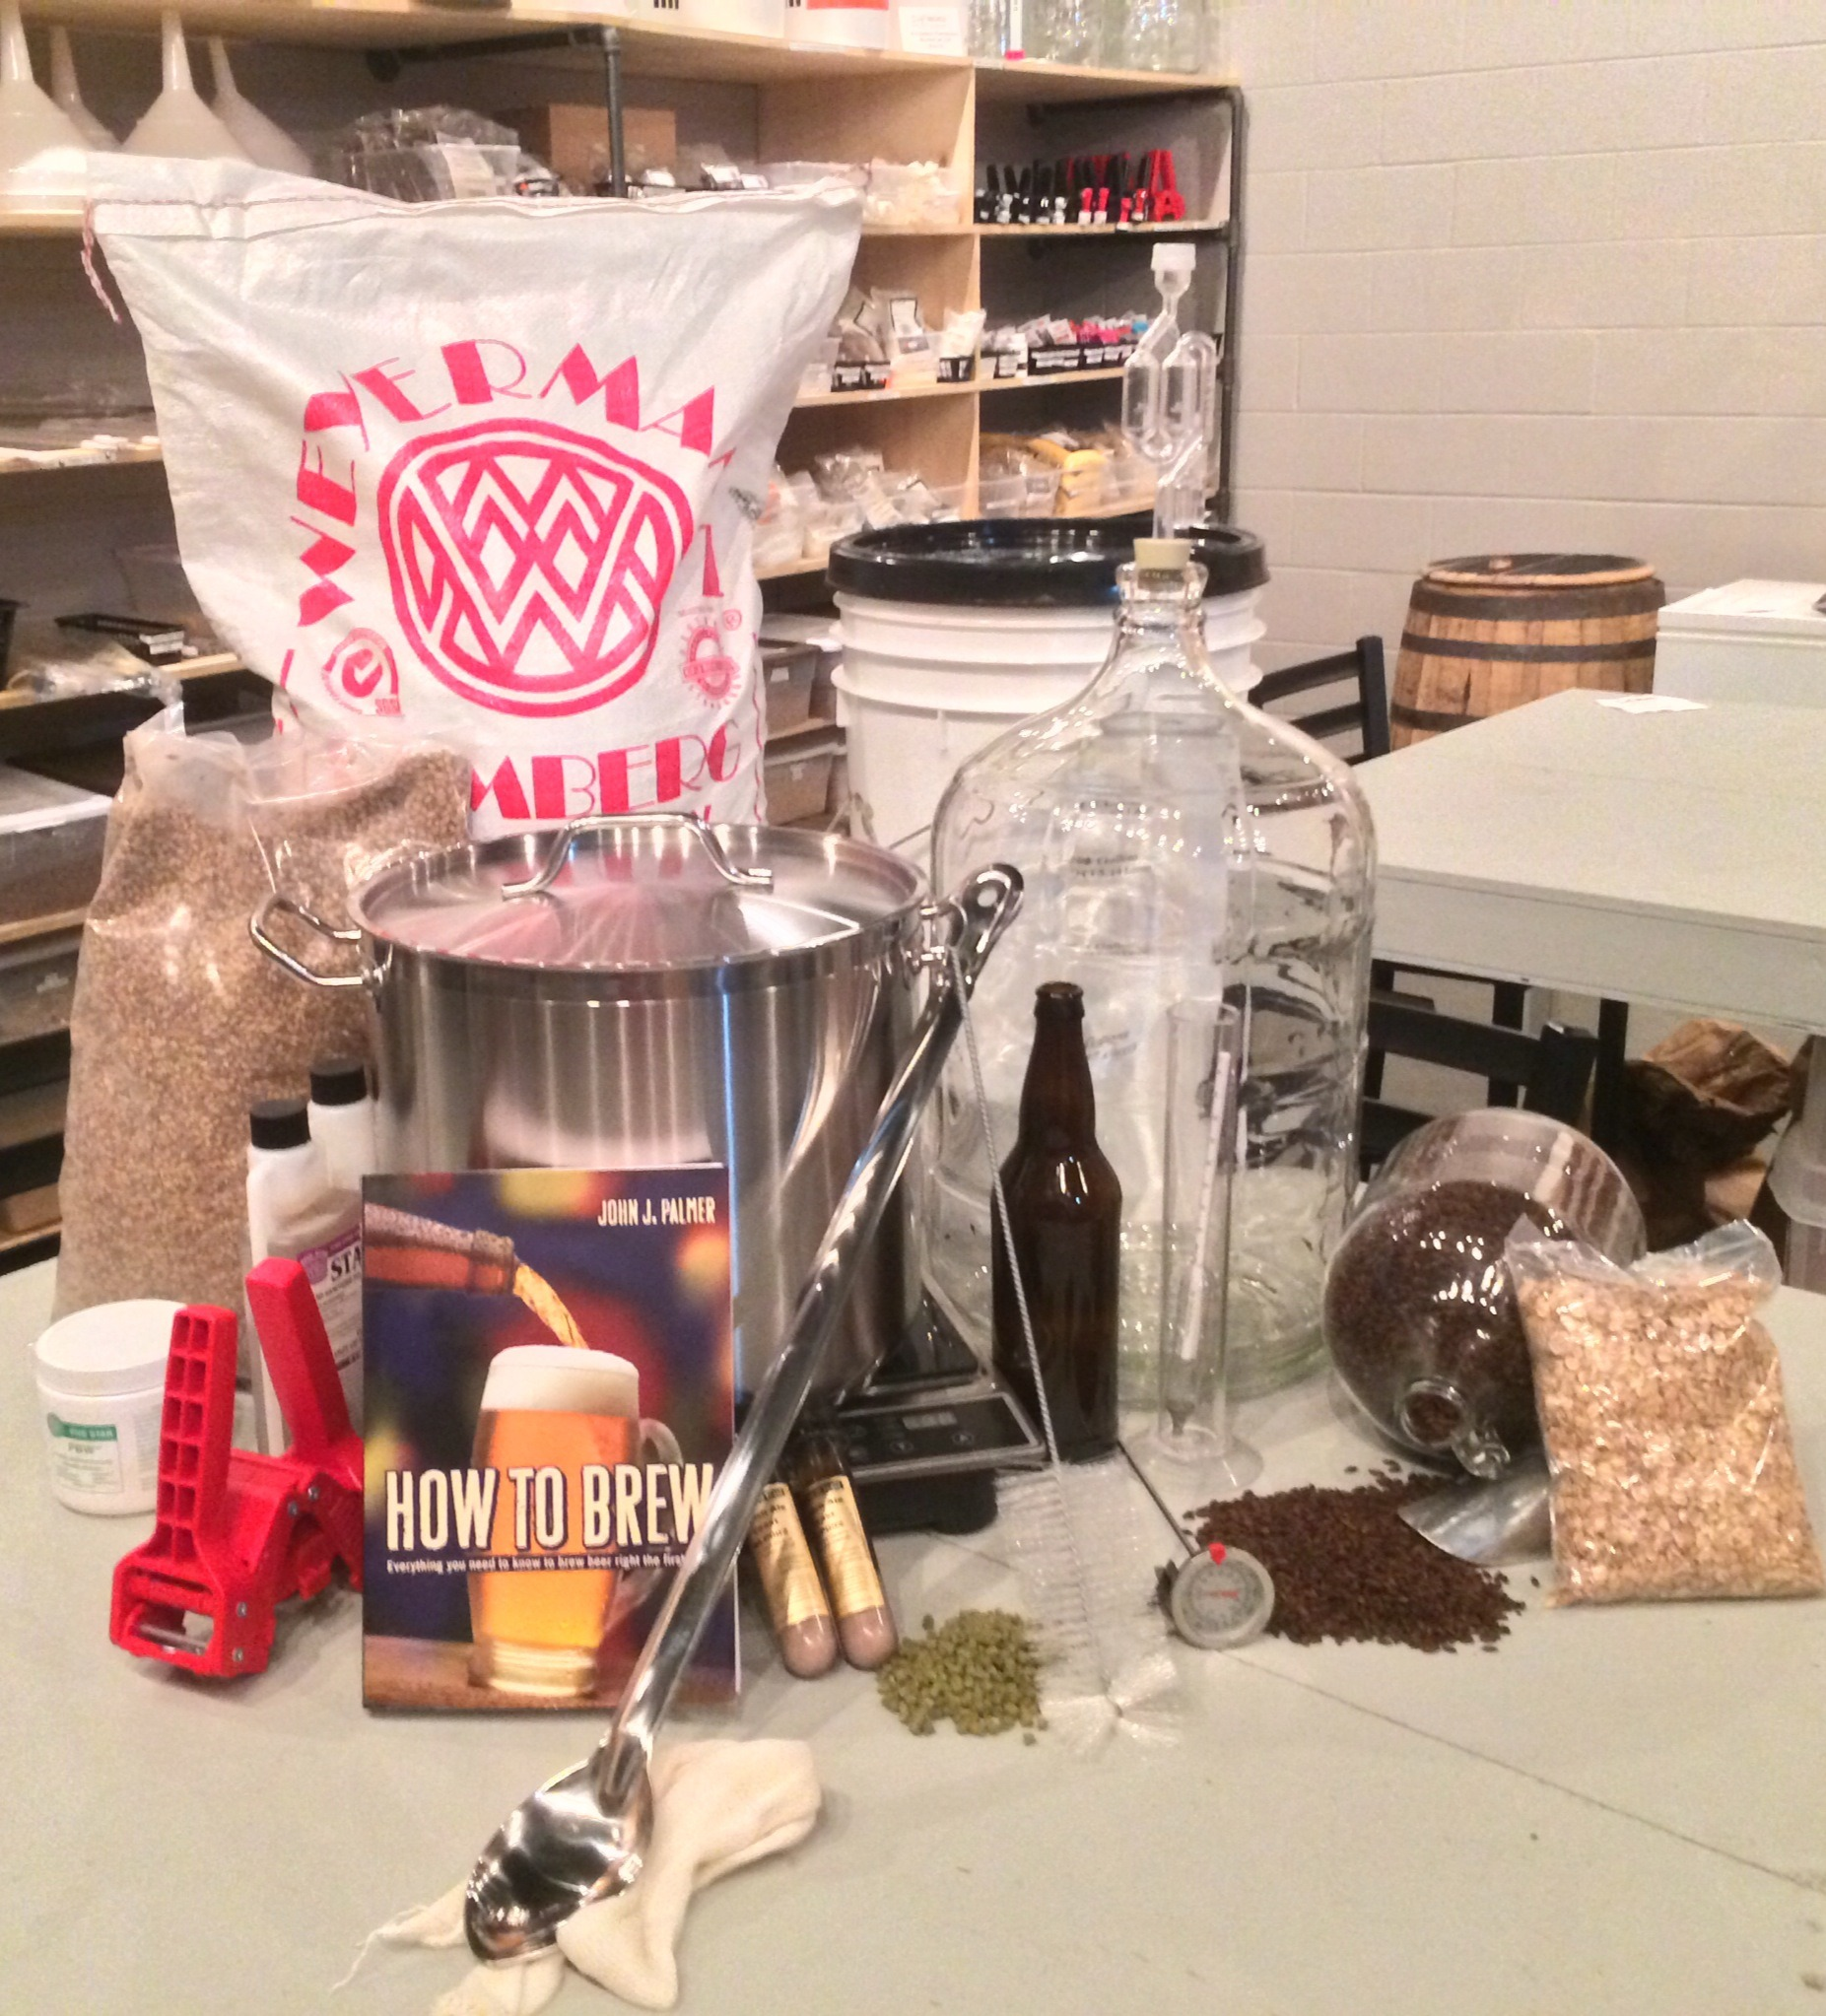 Home Brewing 101 Wednesday,  January 20th at 6pm